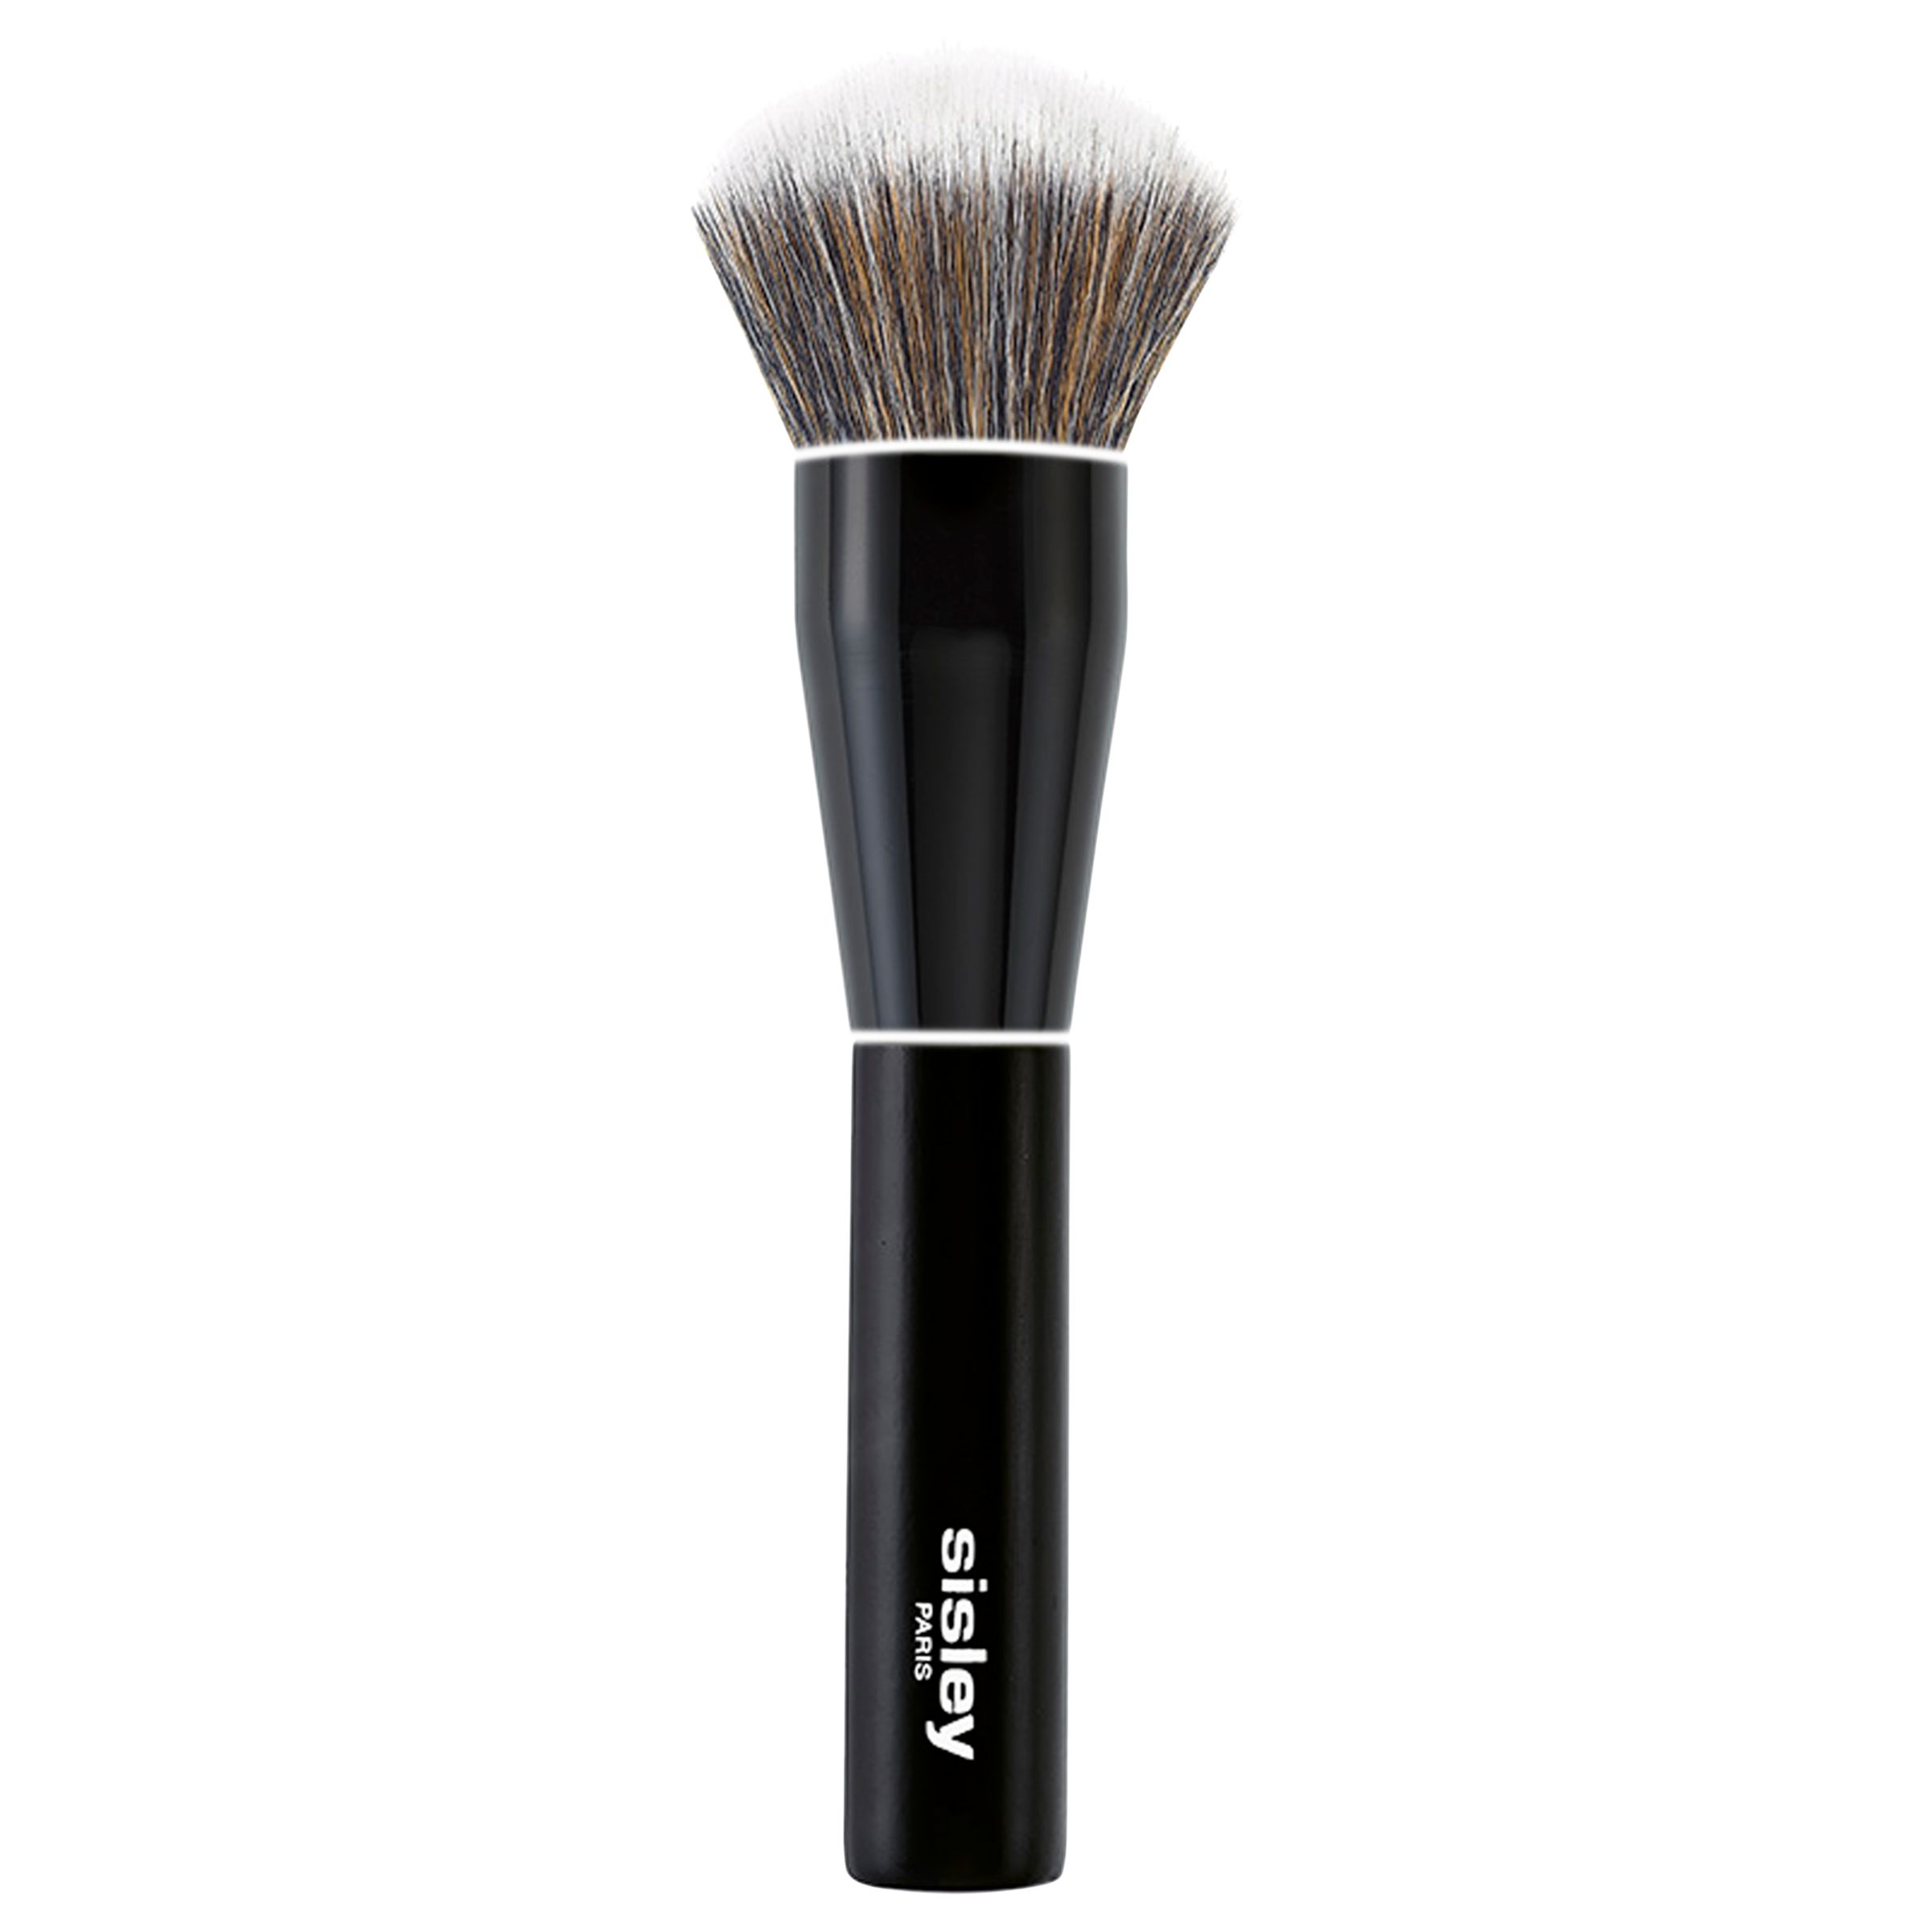 Sisley Sisley Powder Brush